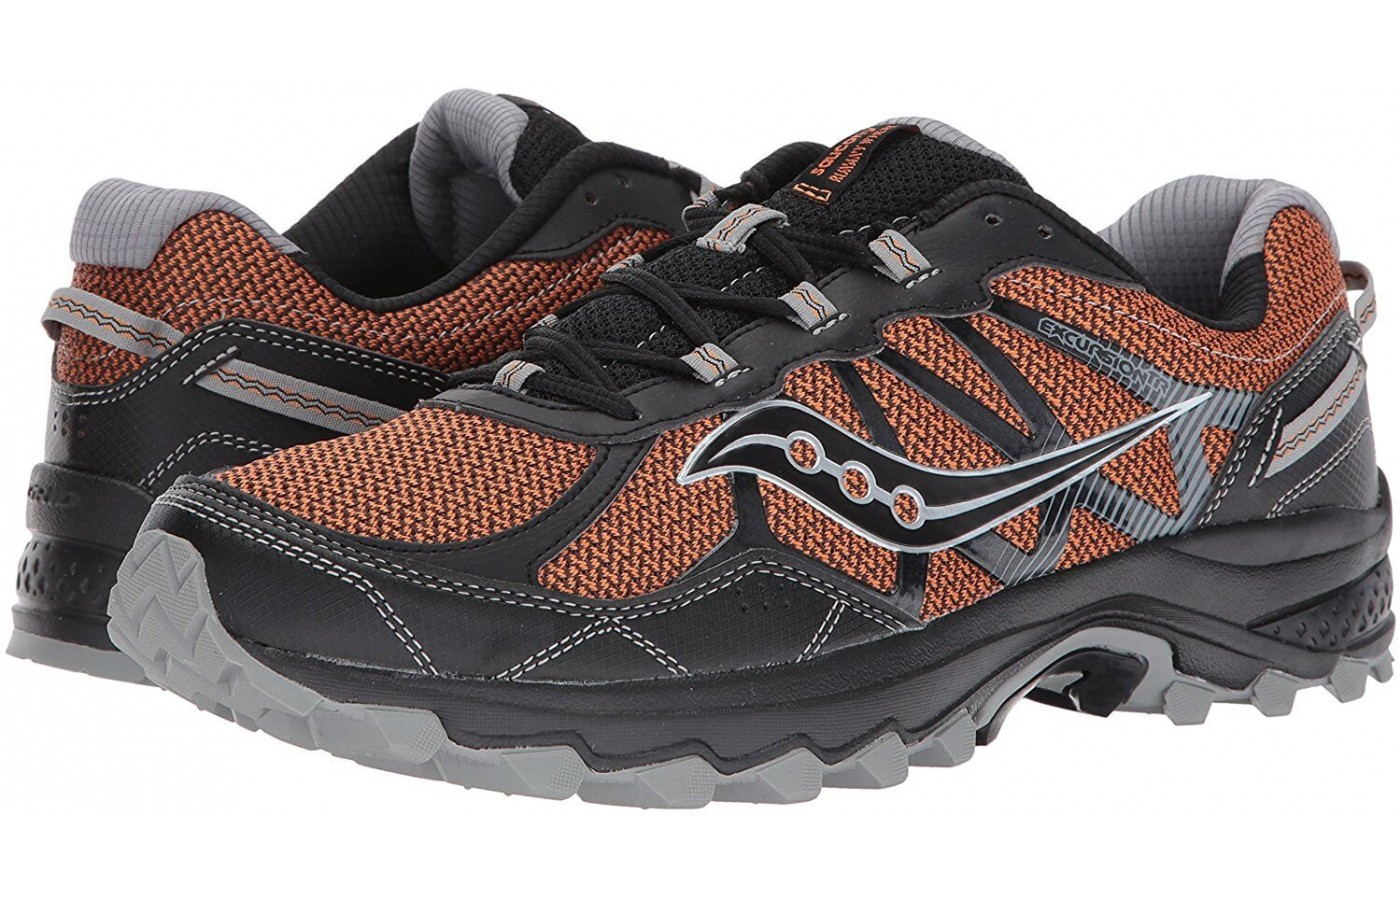 The Saucony Excursion TR11 also has a GRID cushioning system